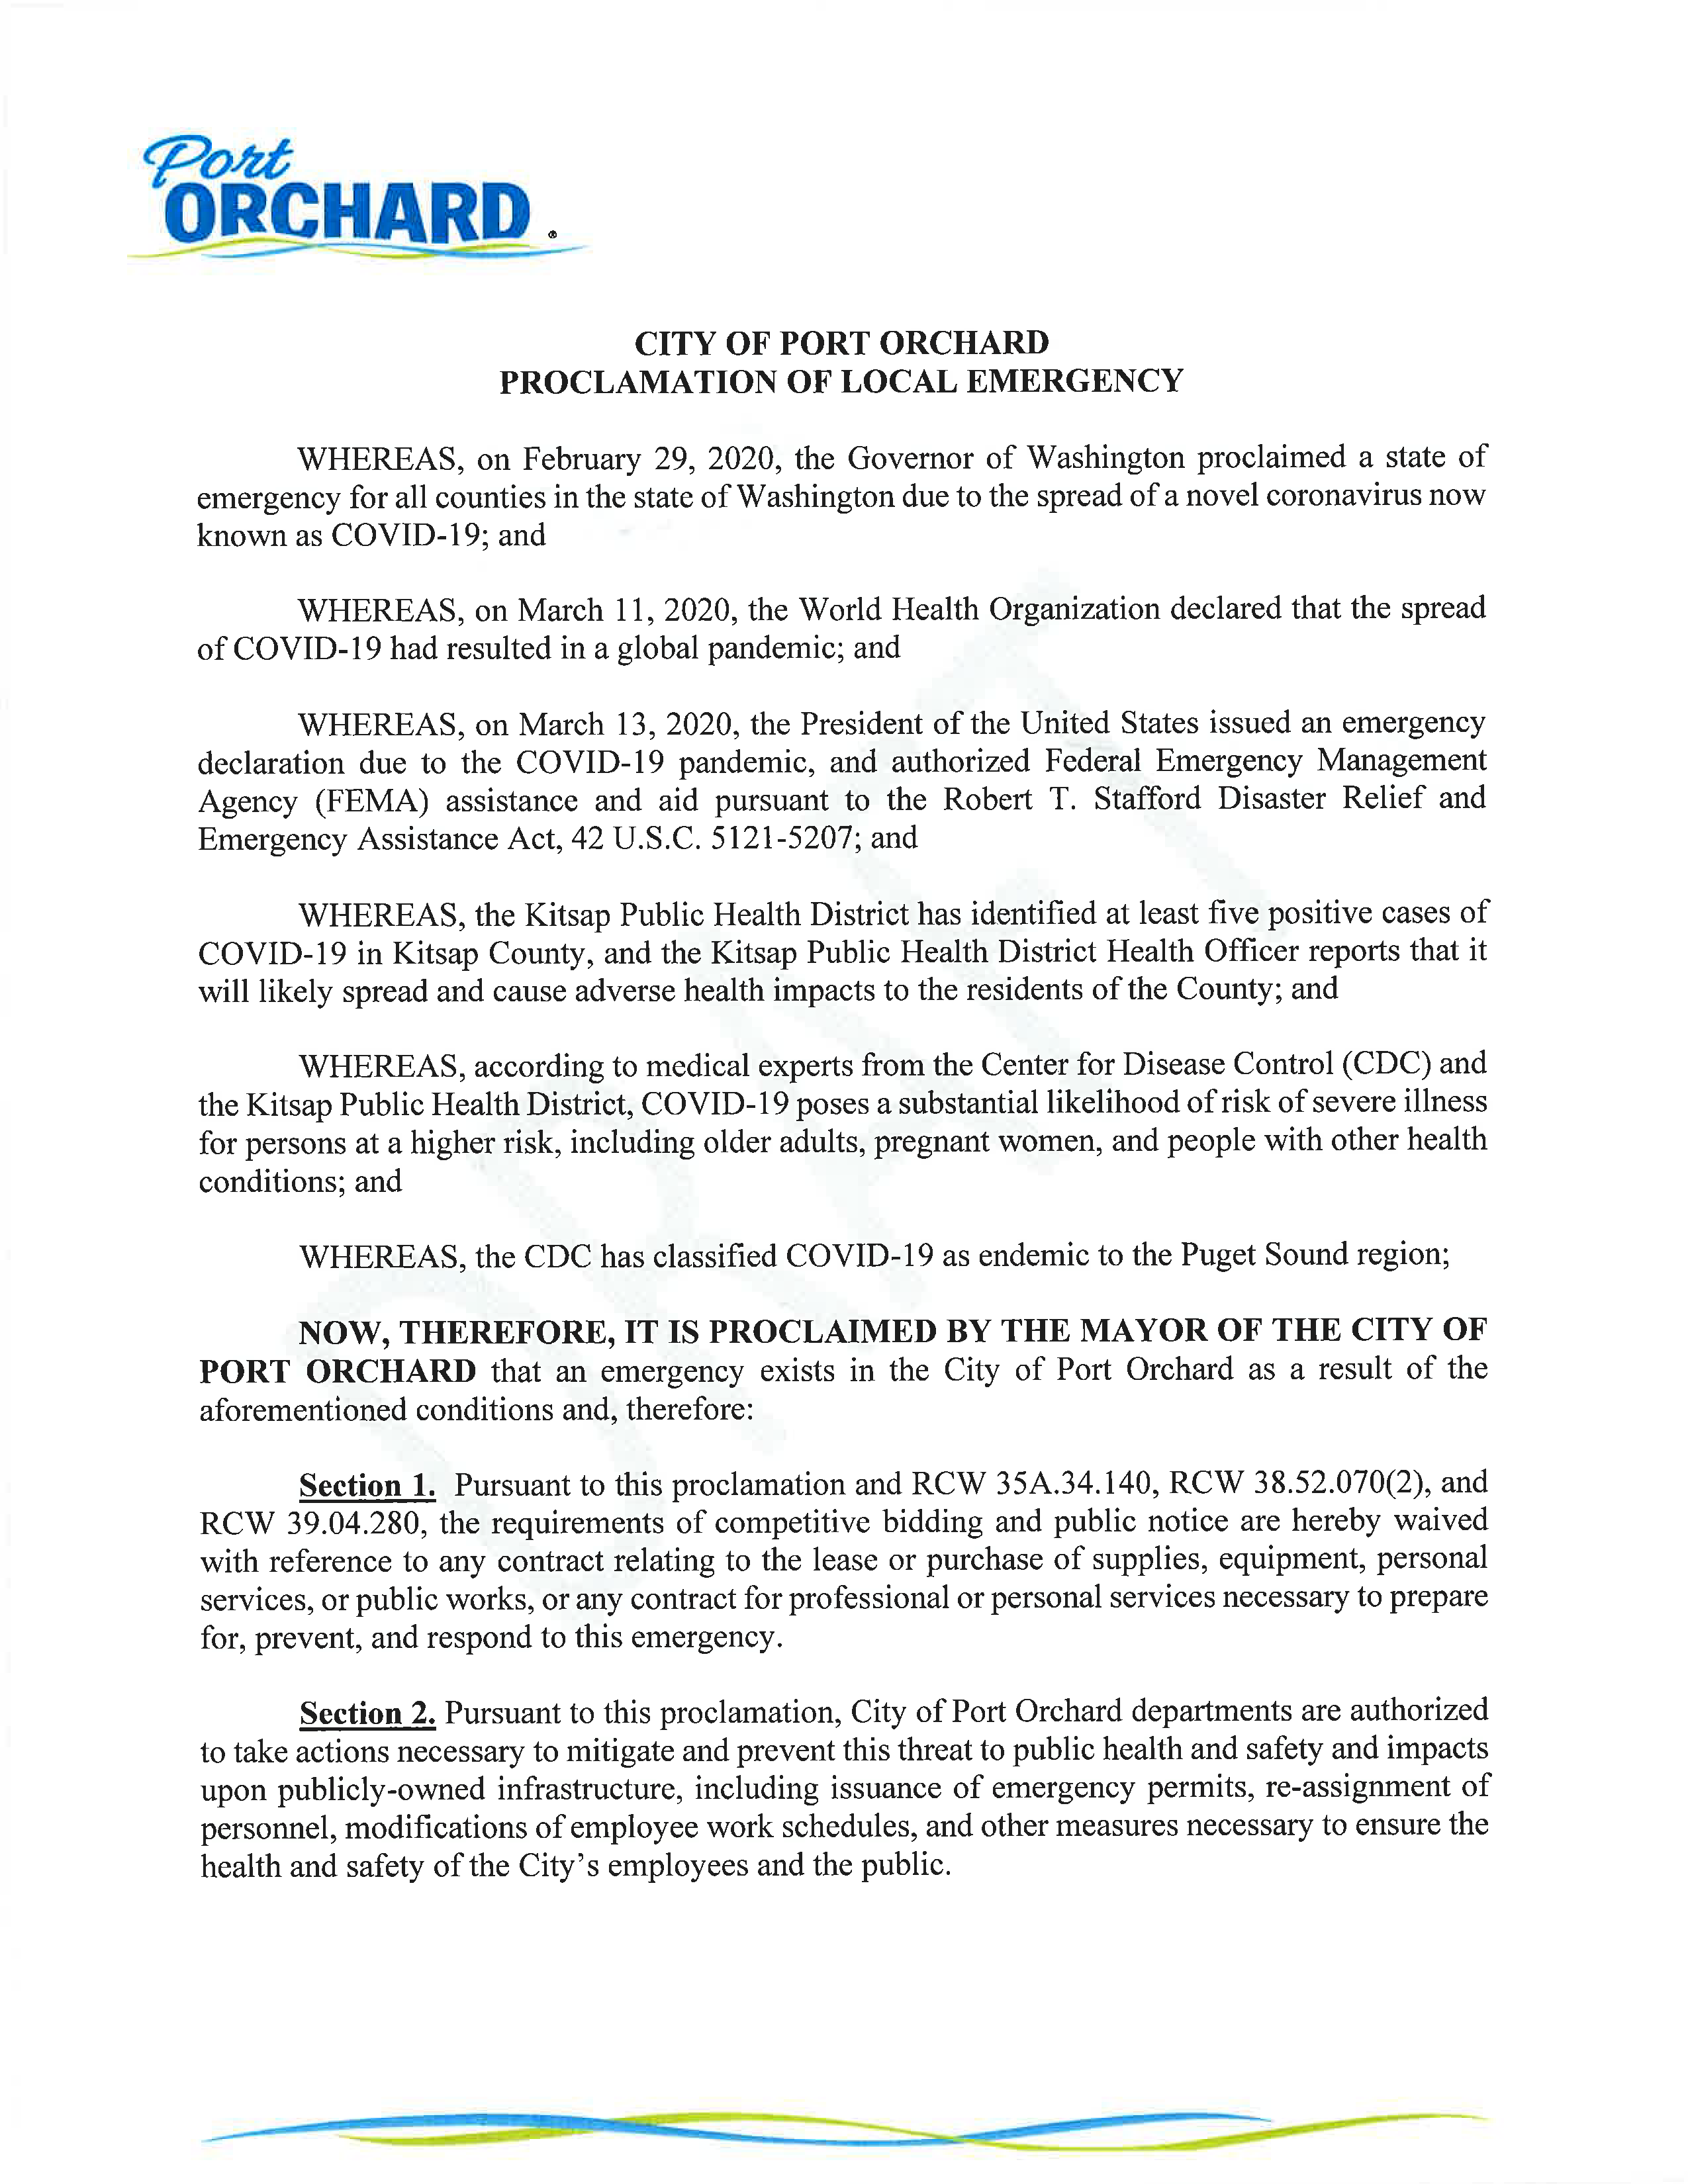 Emrgency proclamation page 1